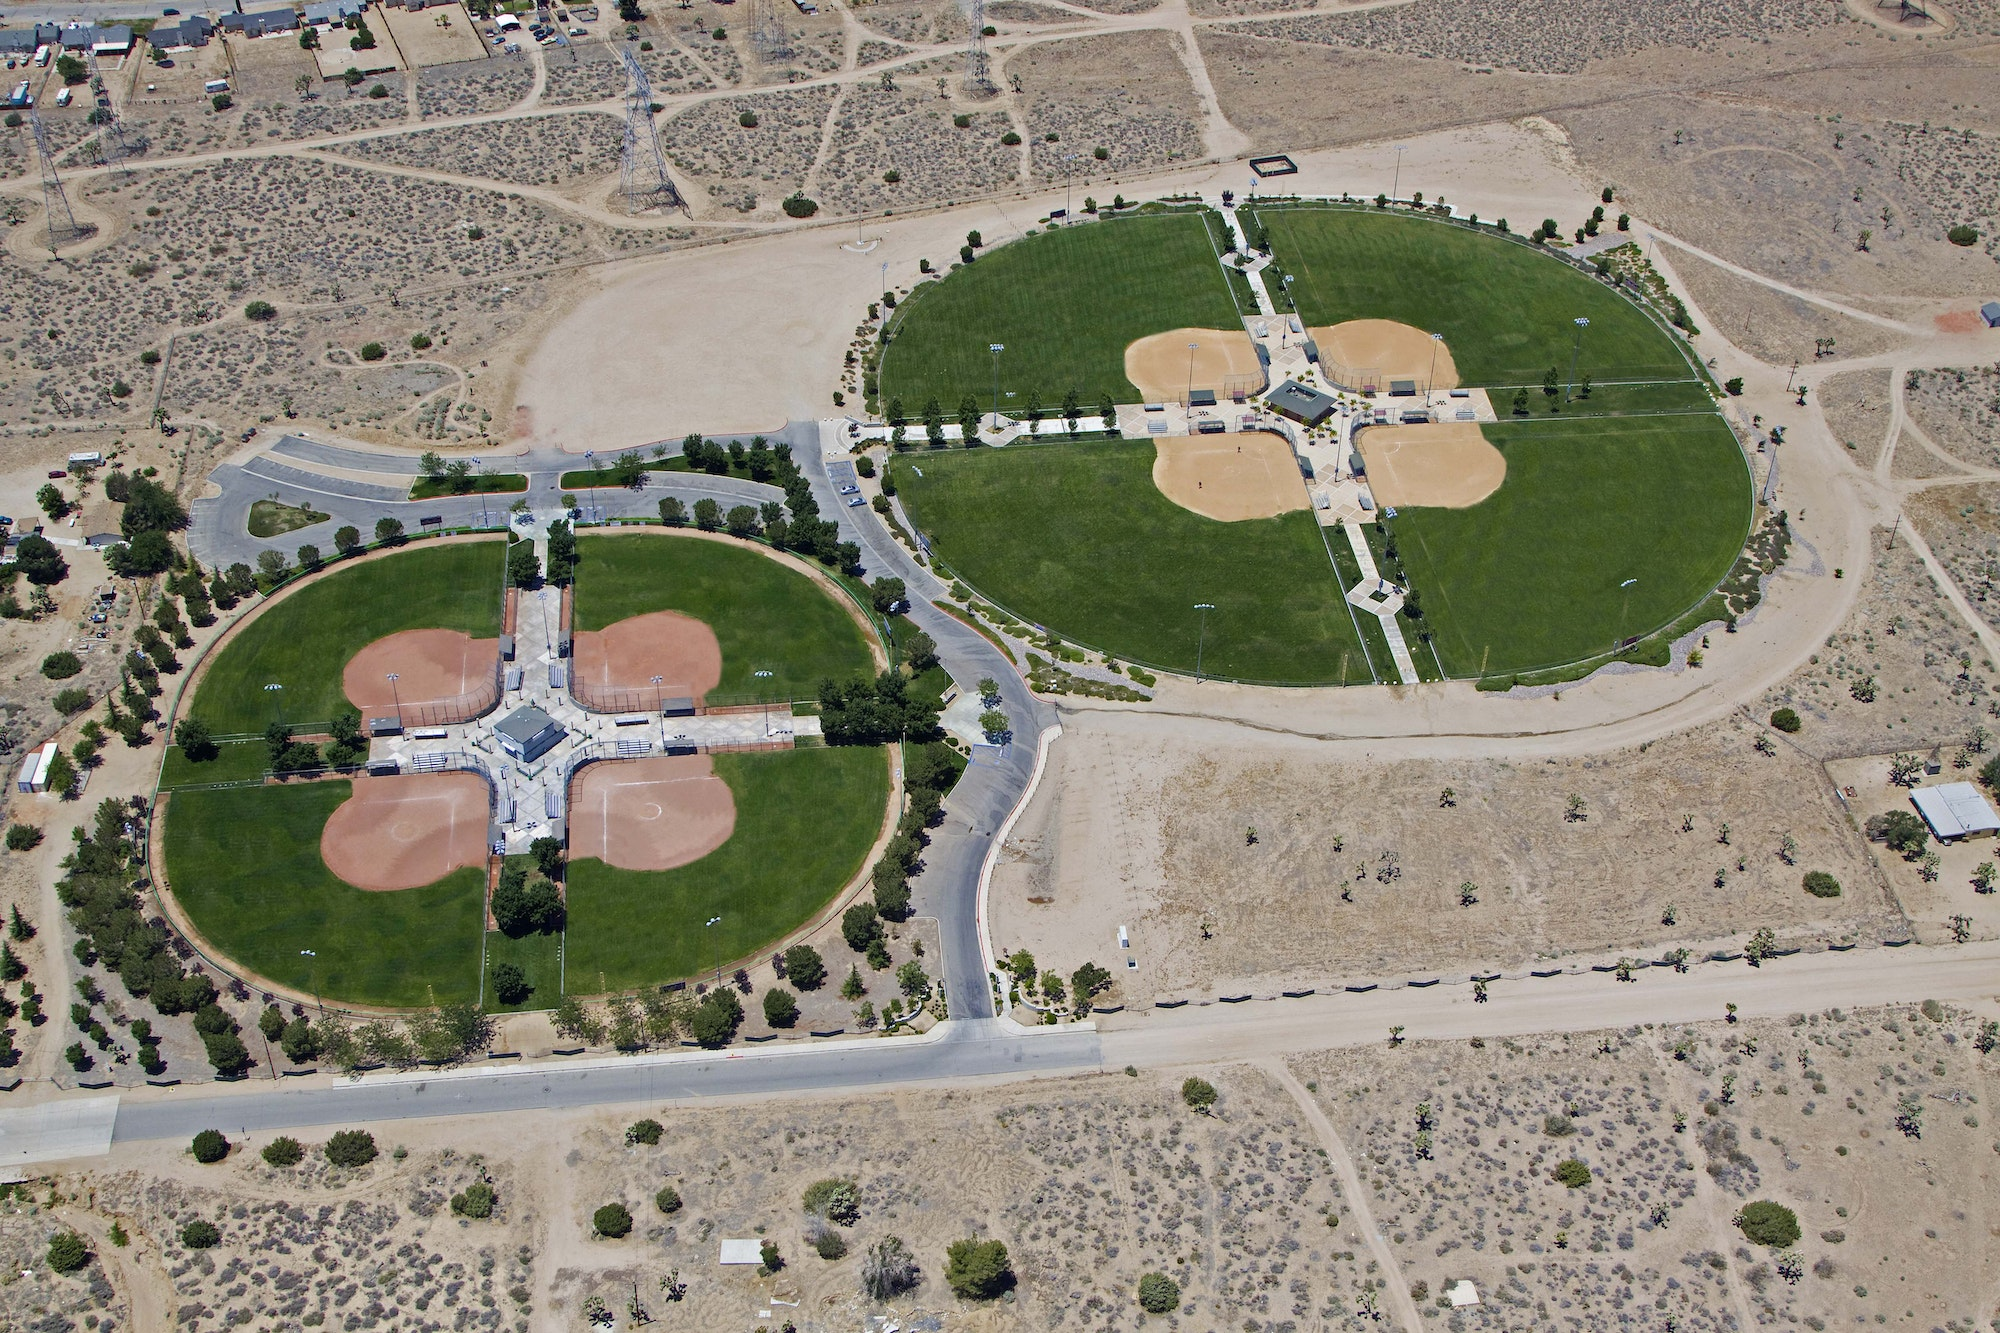 Birds eye view of entire Hesperia Community Park